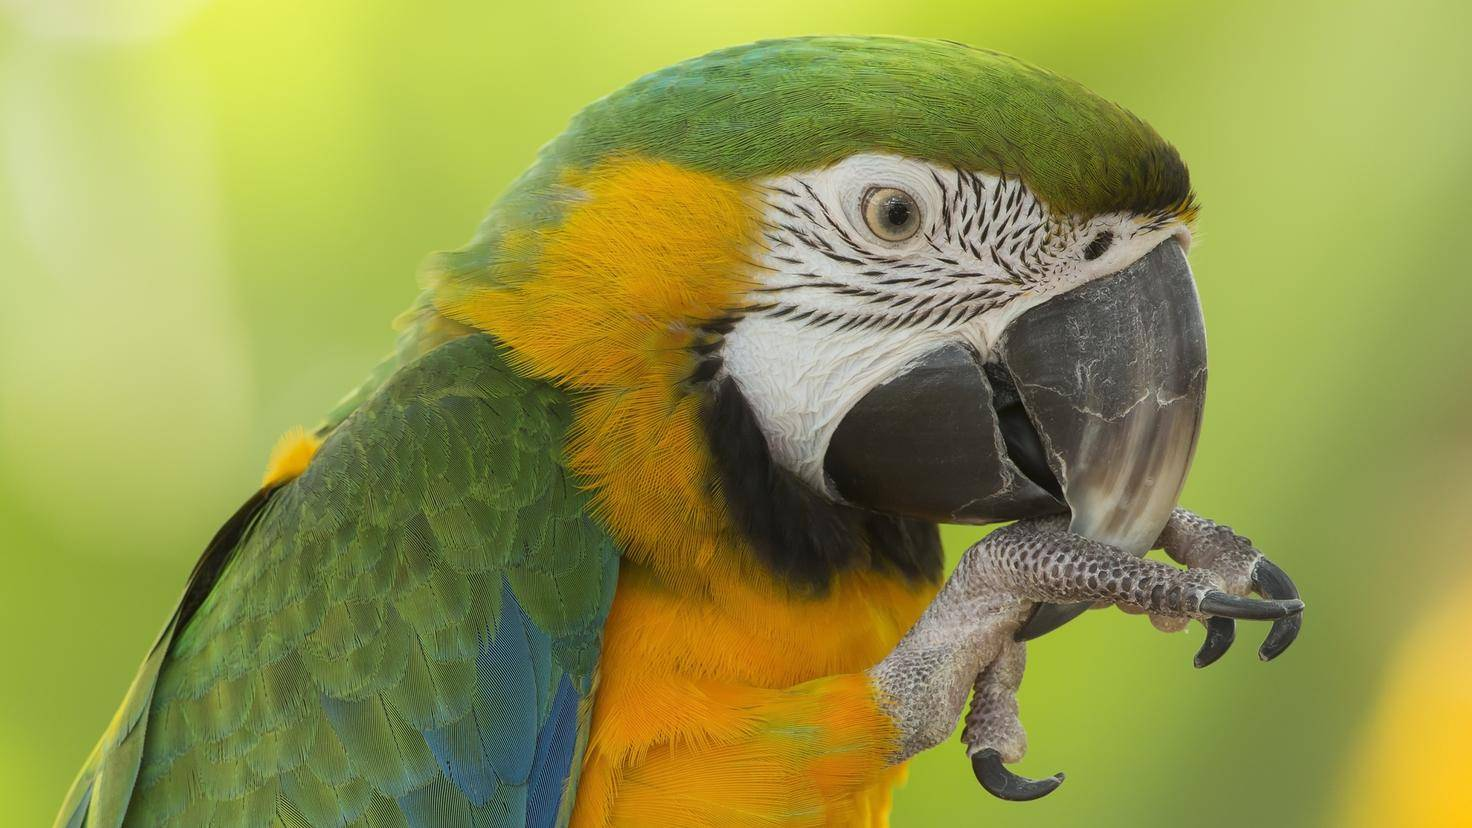 Closeup of a Blue and Gold Macaw